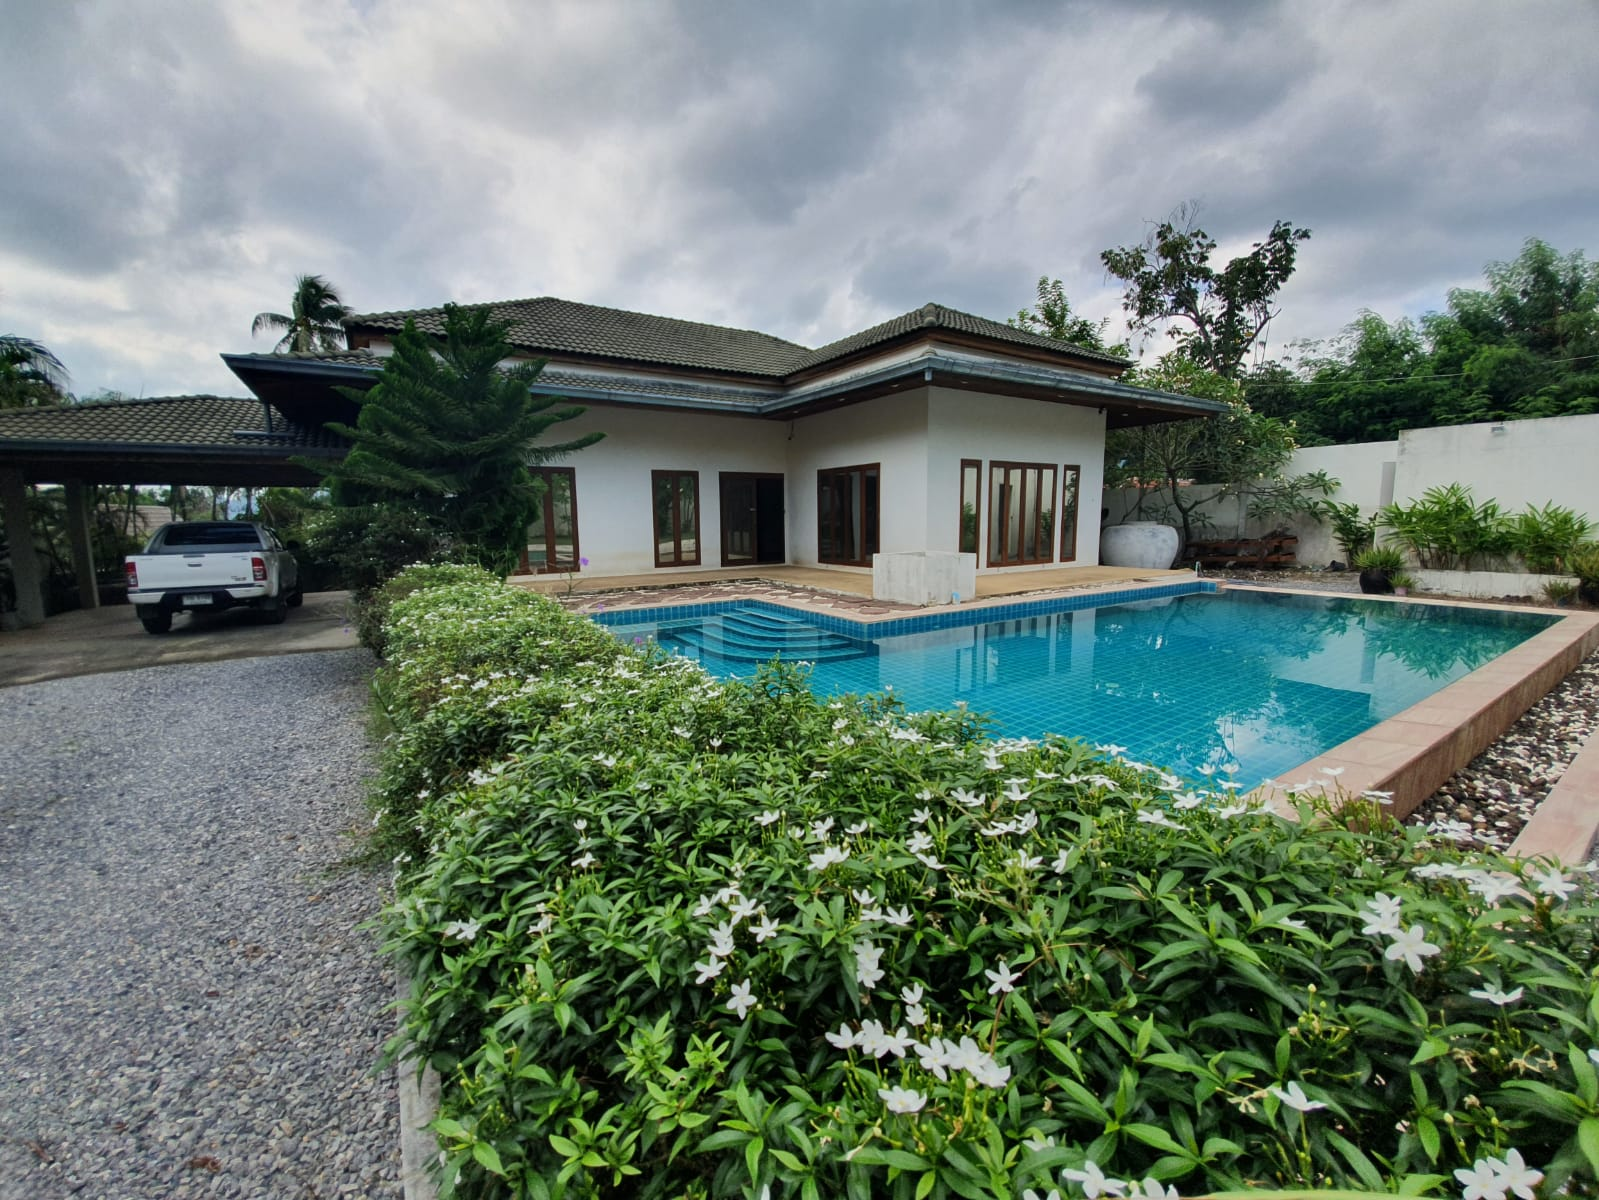 3 bedroom garden villa with boundary wall